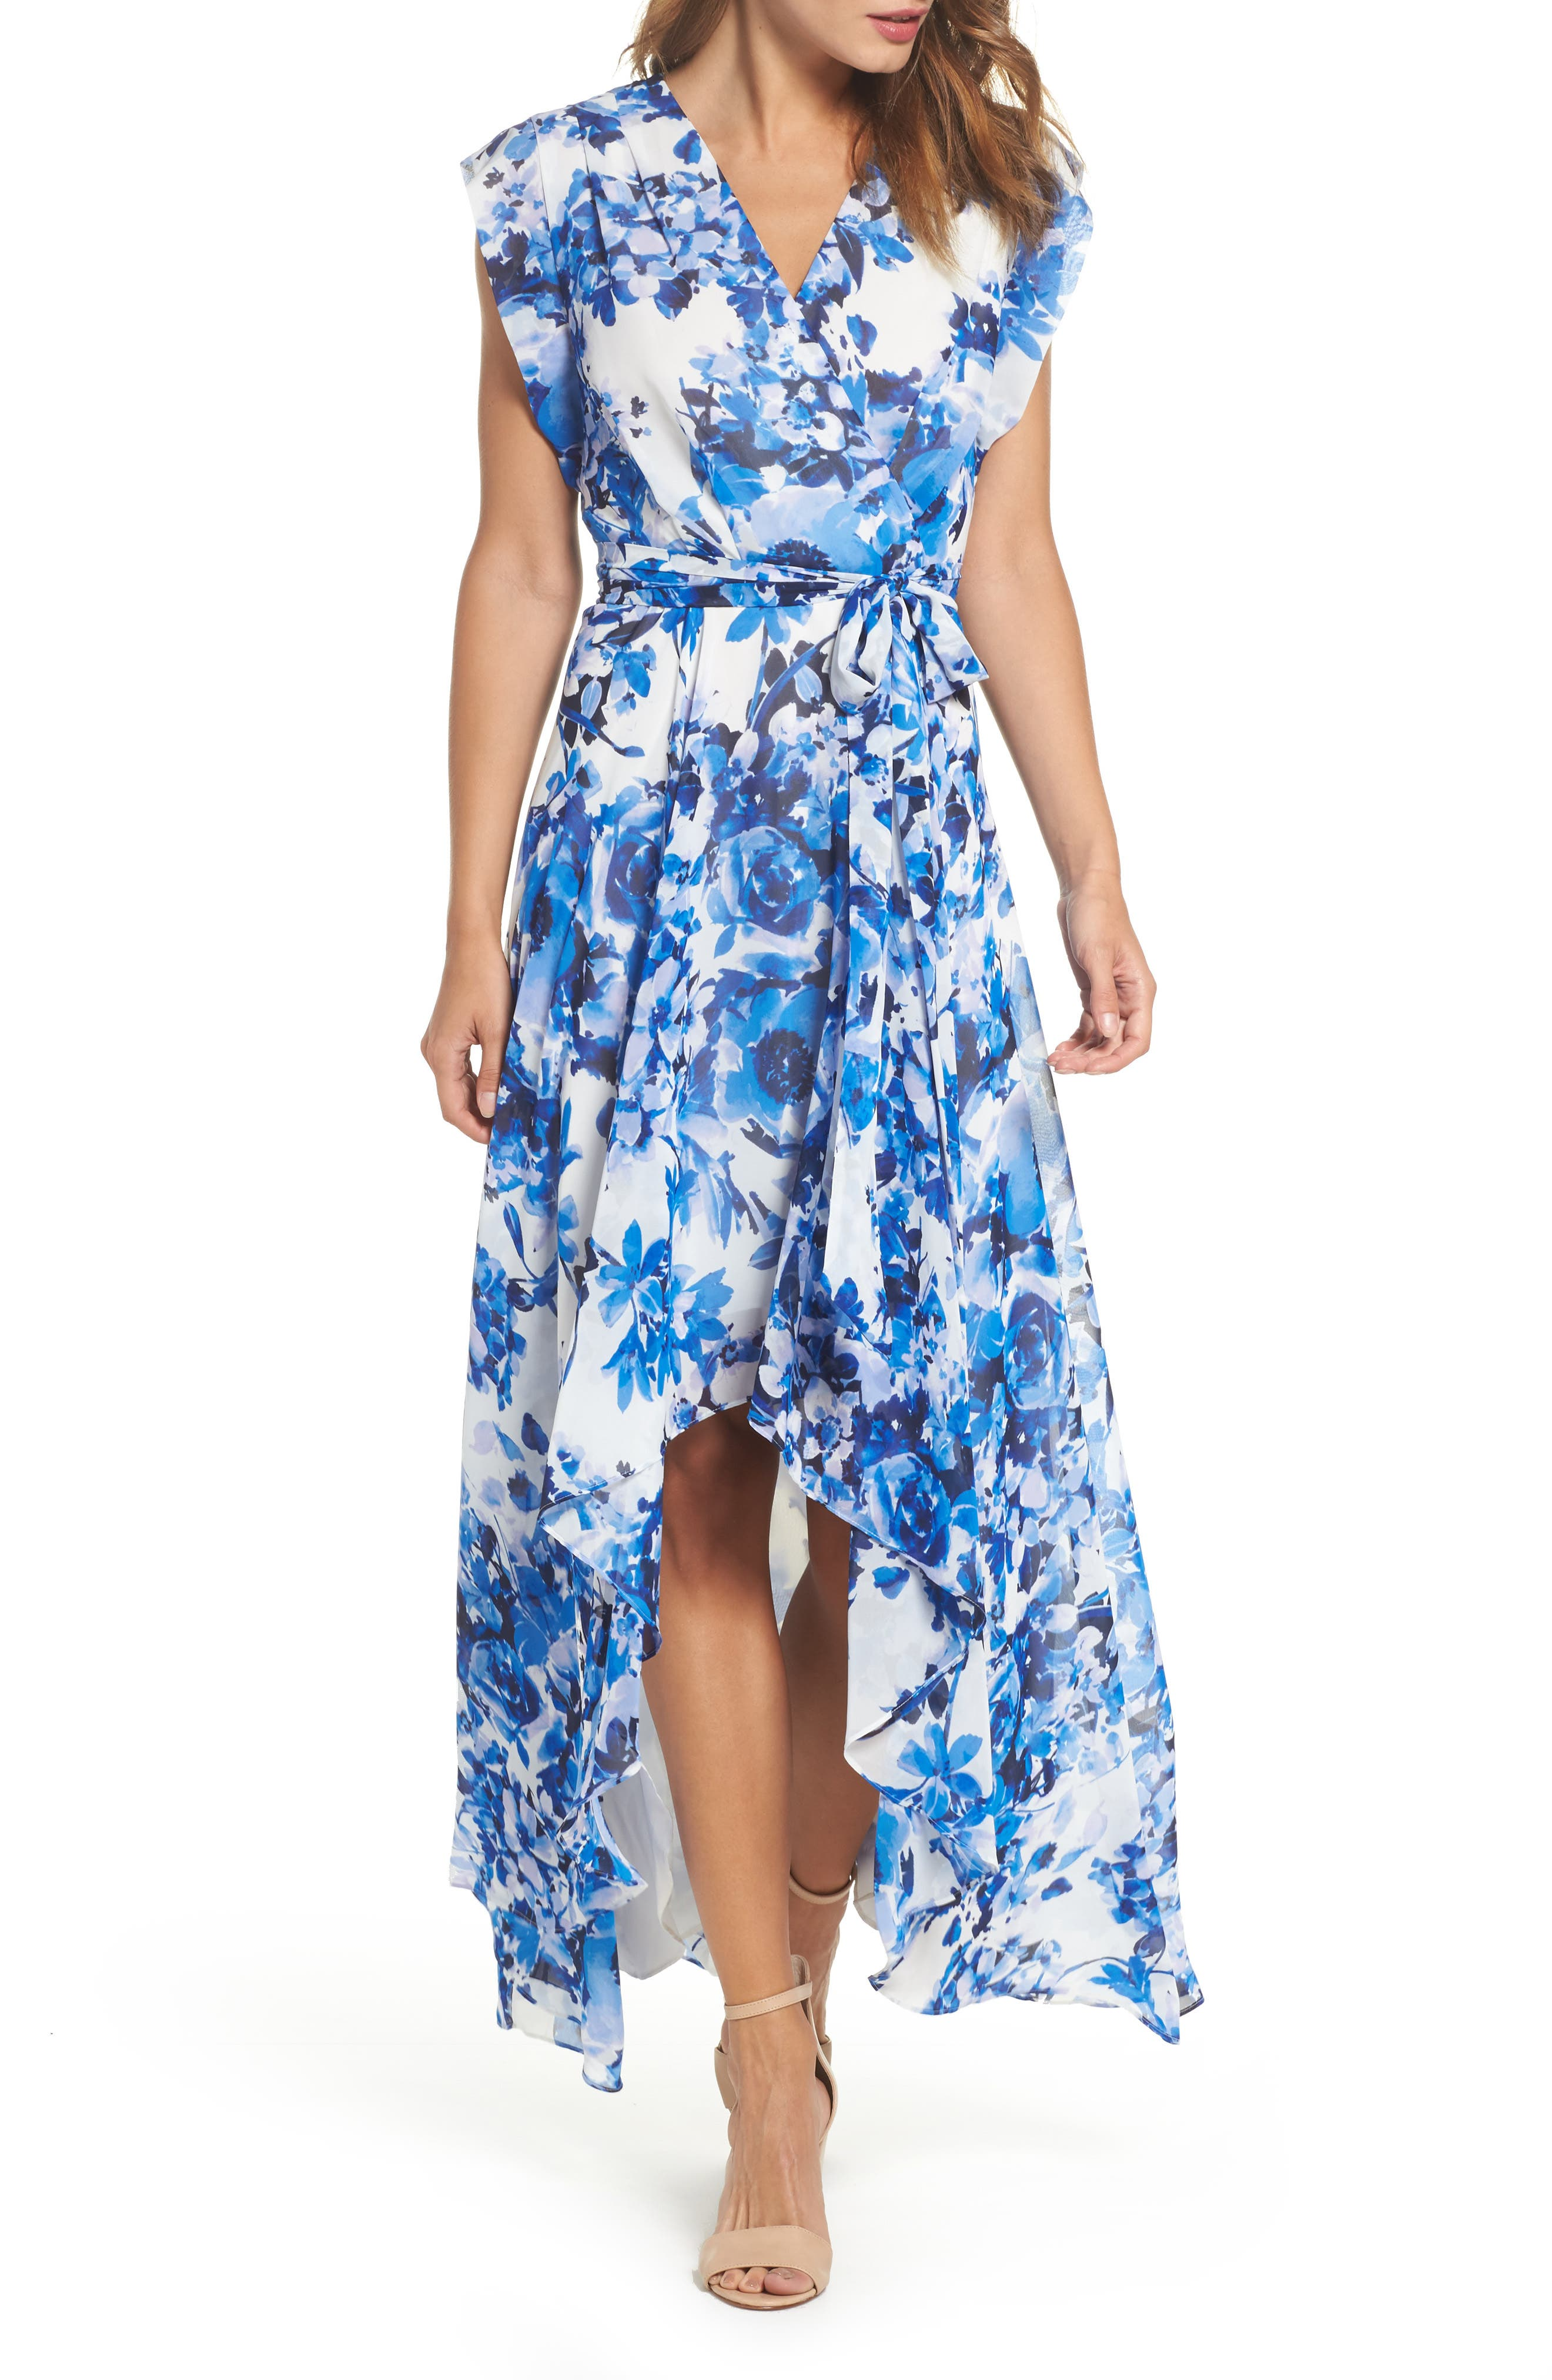 blue chiffon summer dresses size 16 down to ankle